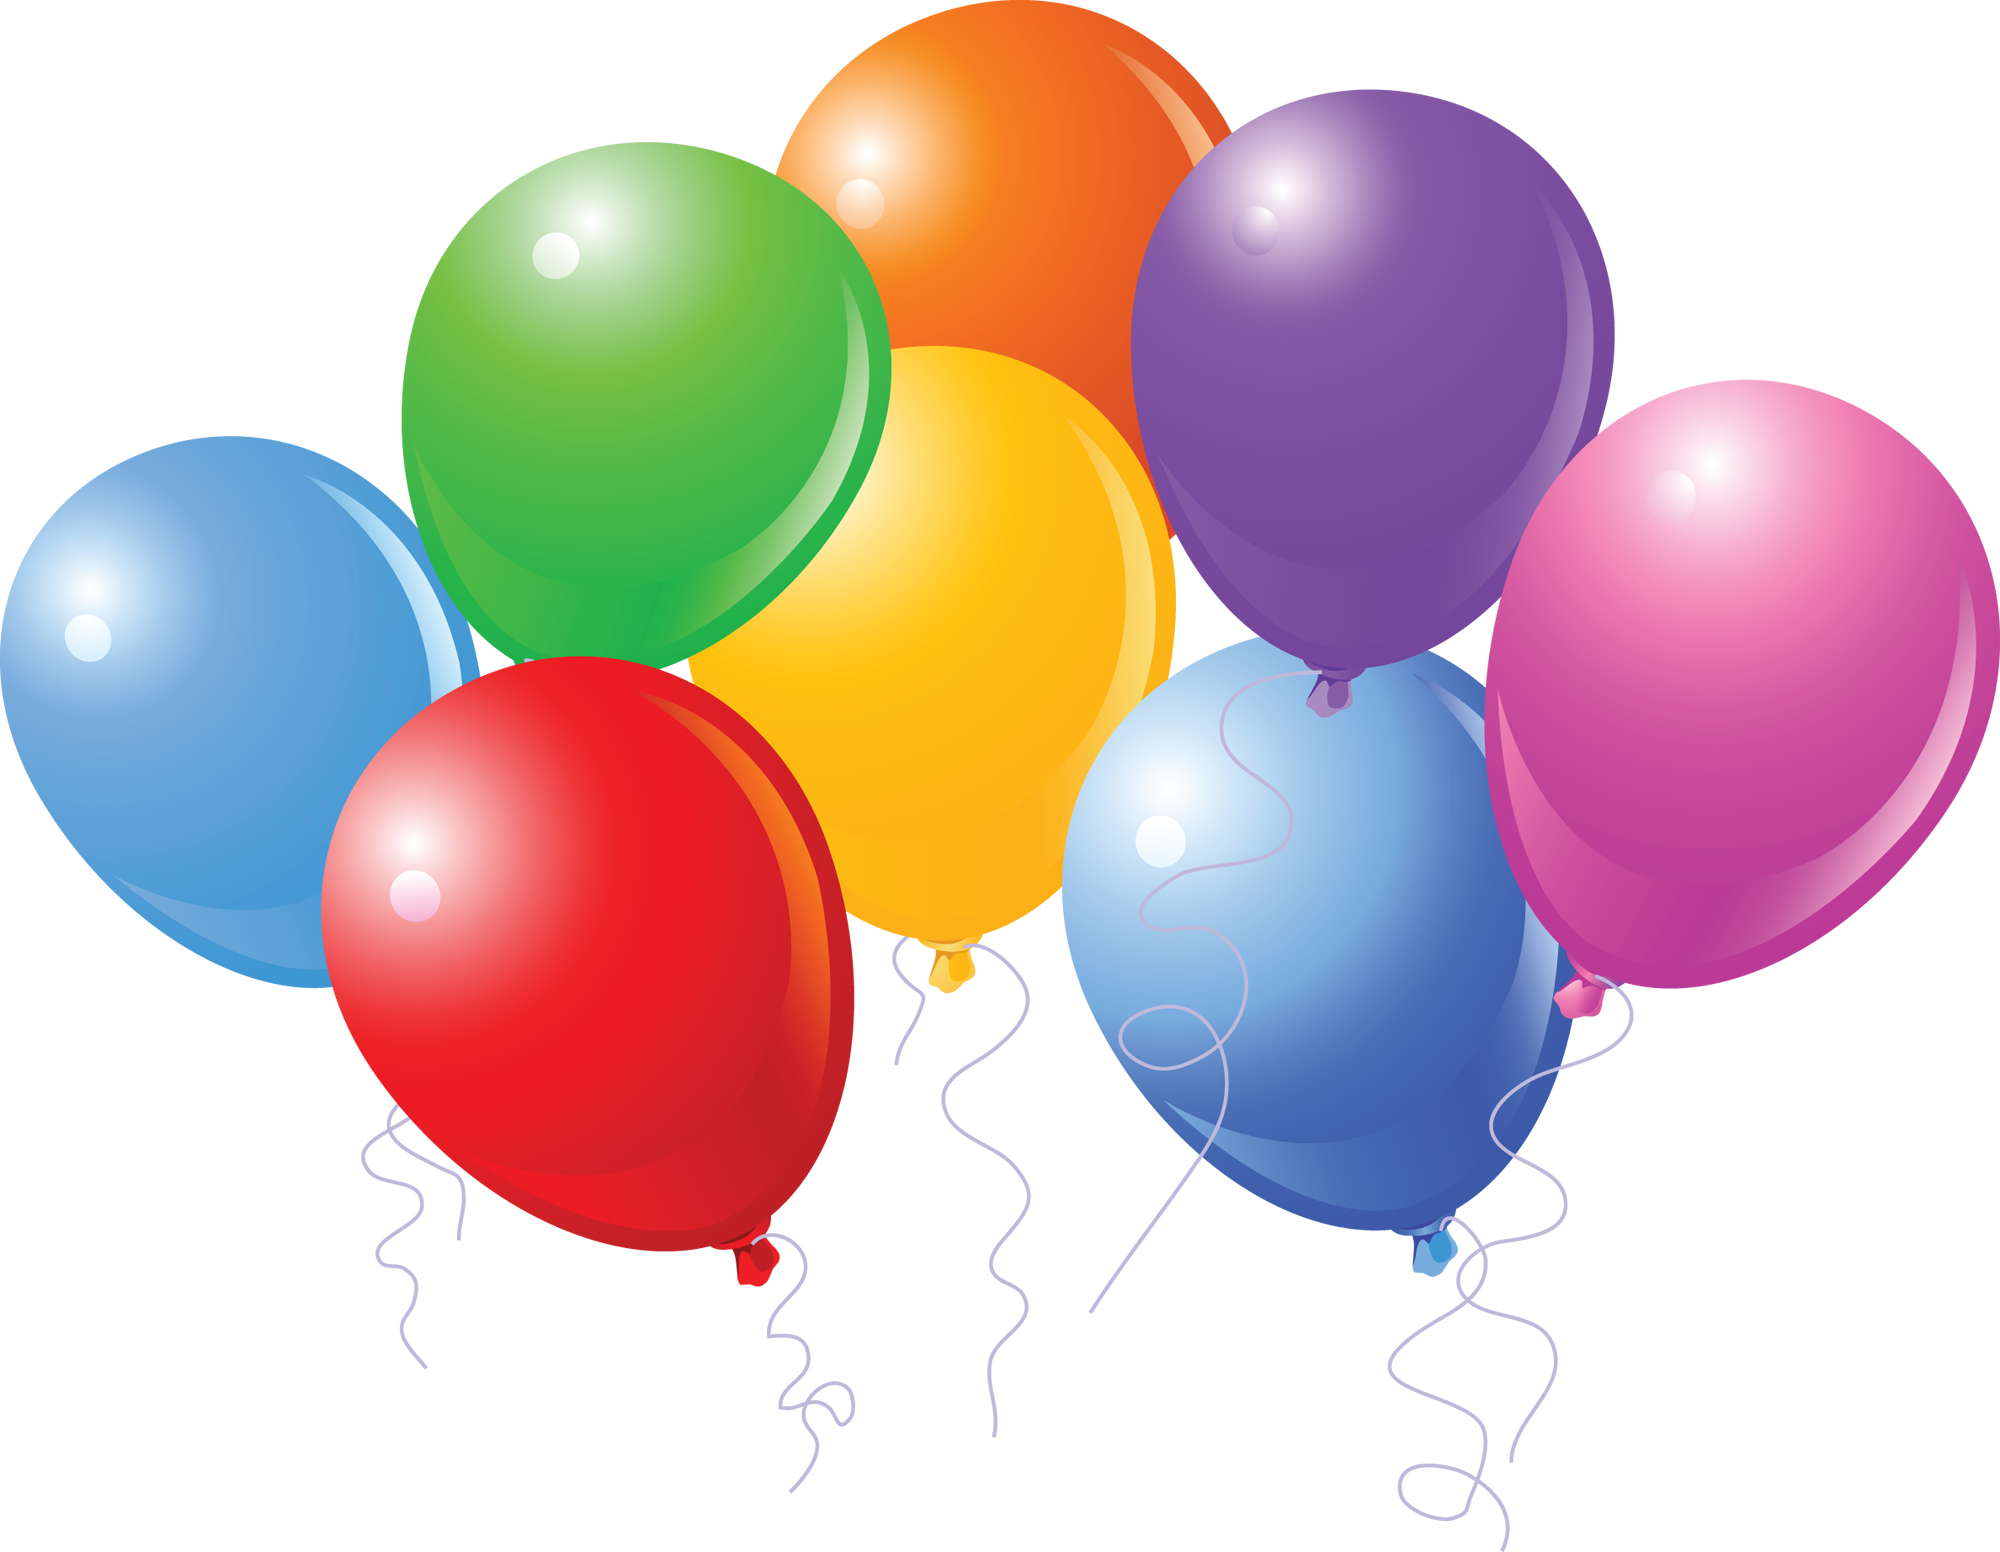 2000x1552 For Your Desktop Birthday Balloons Wallpaper 43 Top Quality